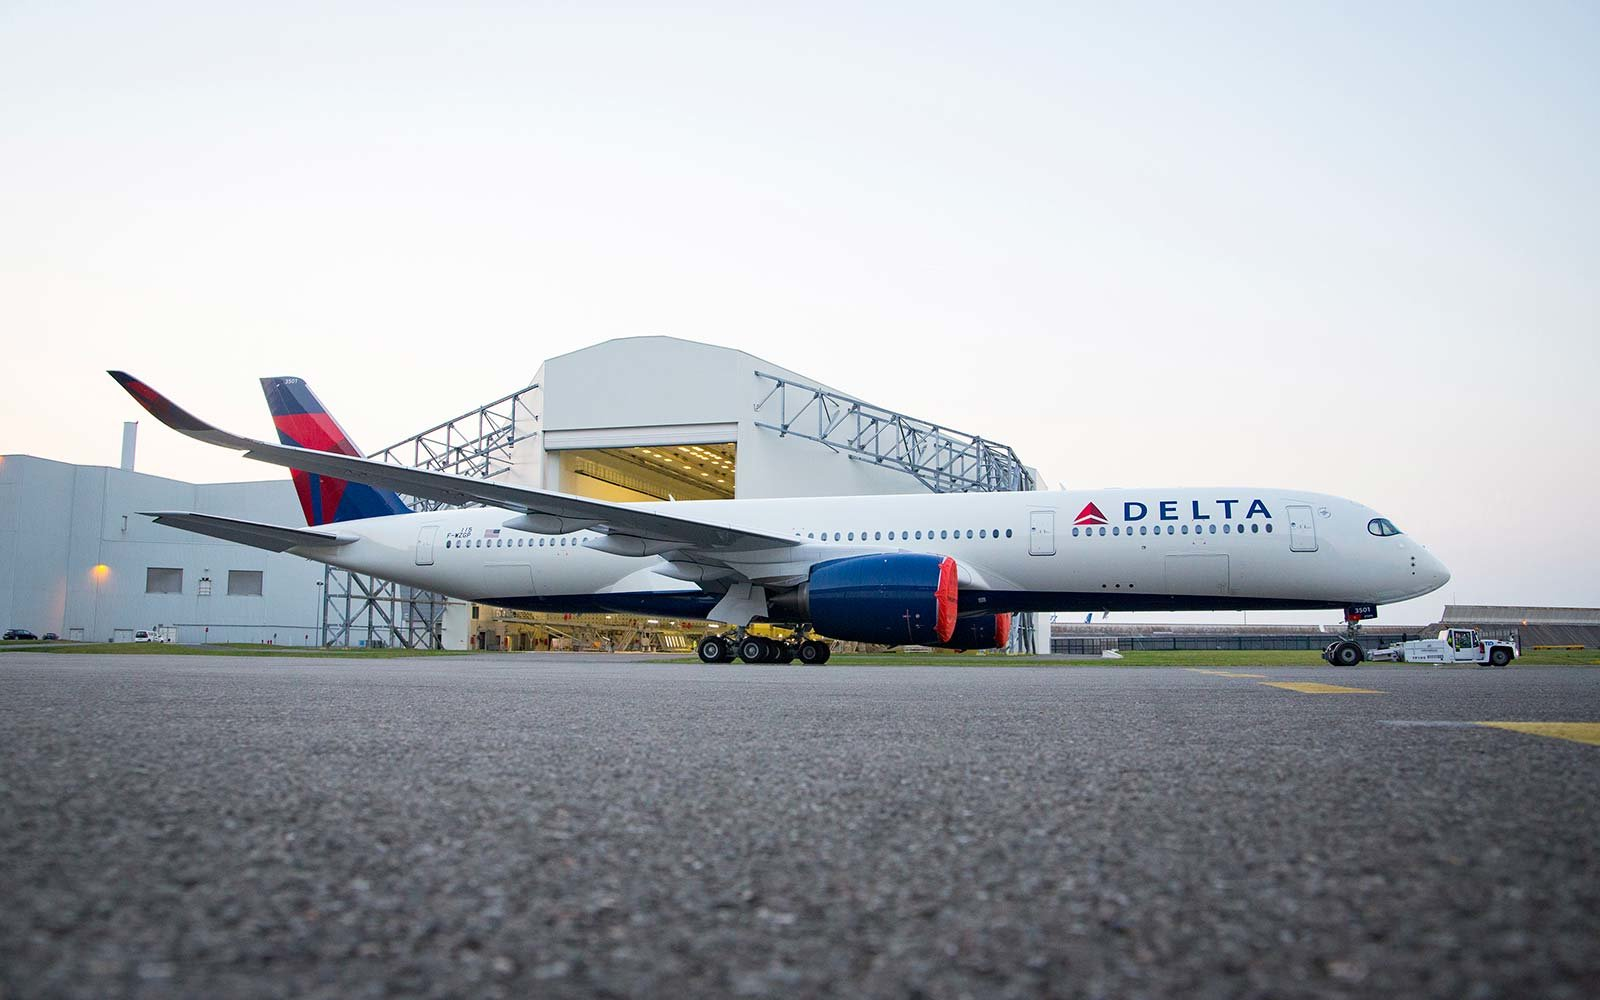 painthall-delta-airlines-airbus-a350-NEWDELTA0717.jpg